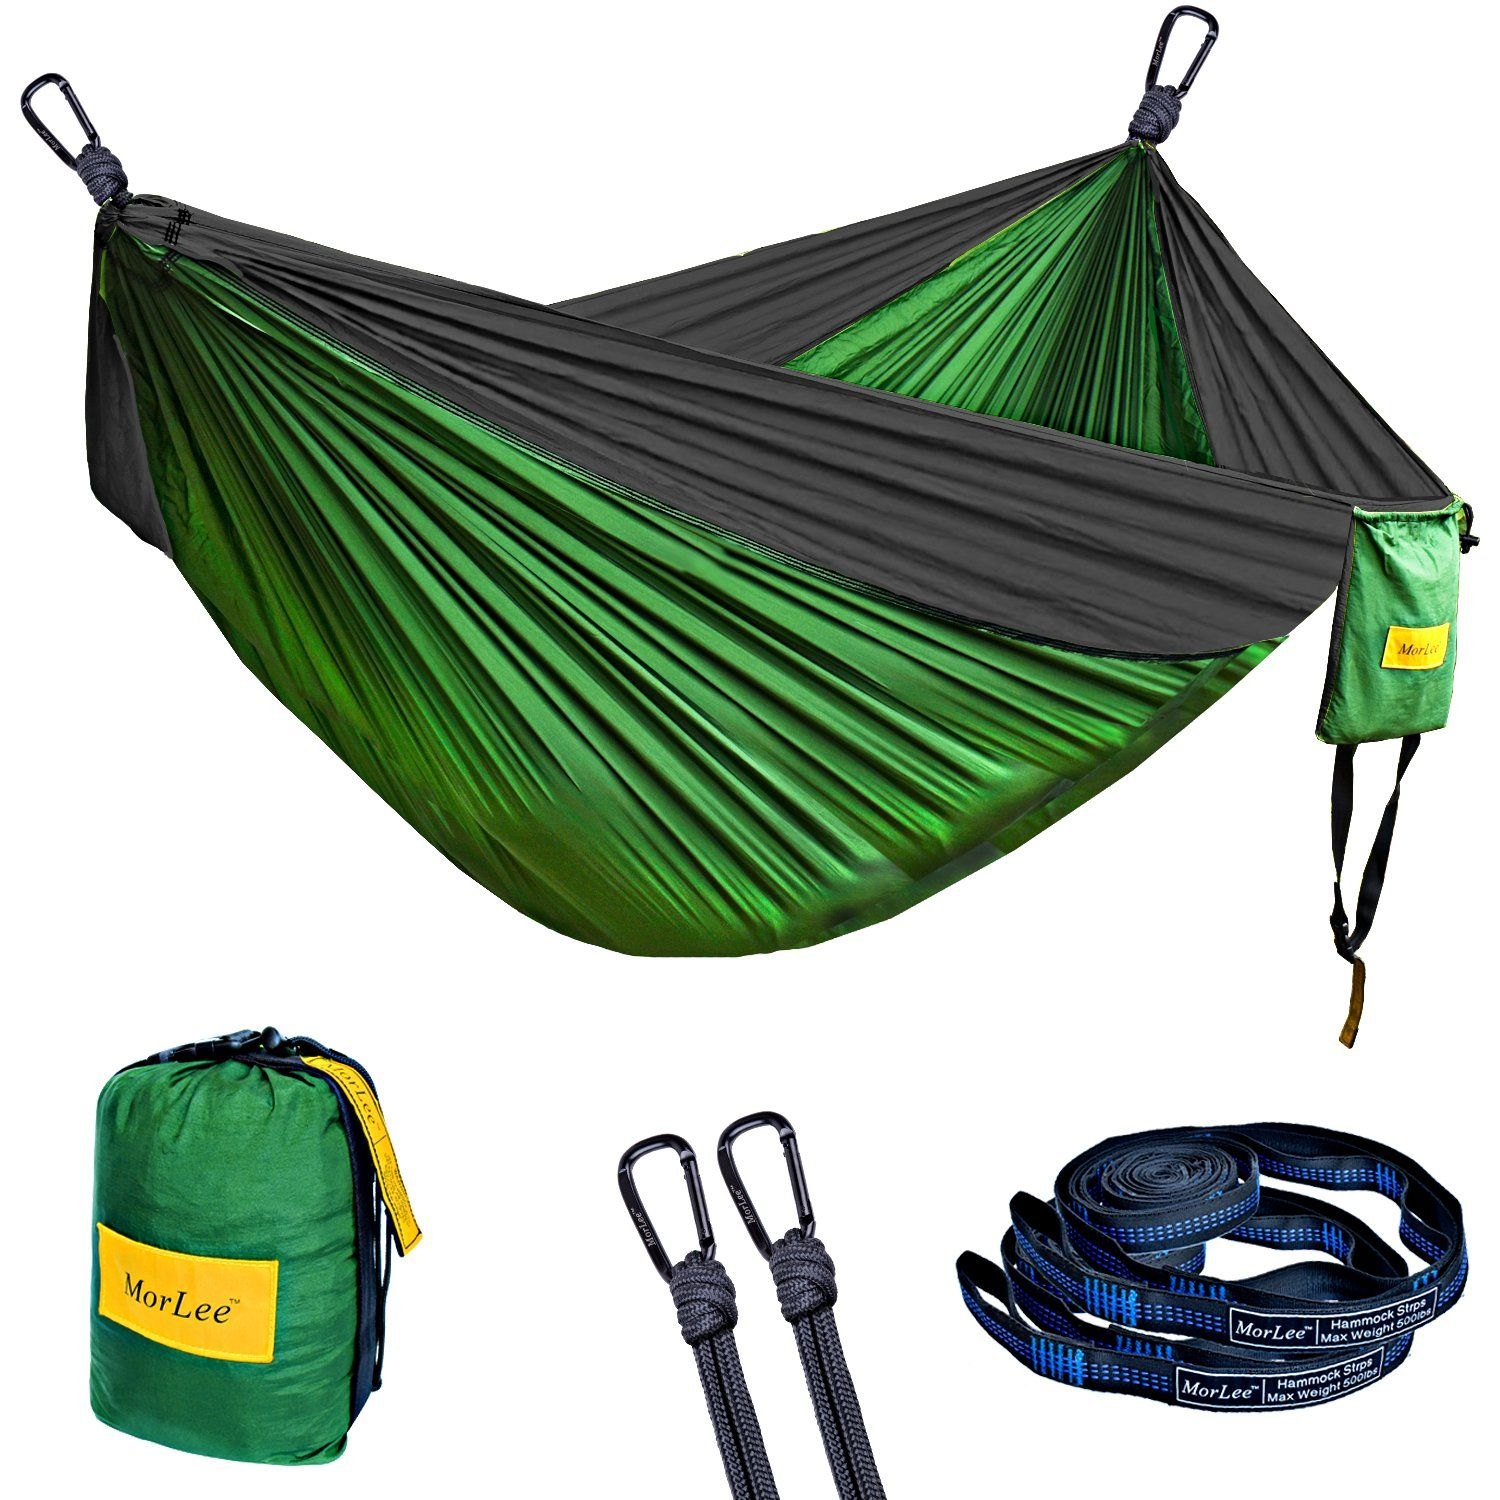 com yard outdoor w patio pillow support stand hammock product lbs from that furniture dhgate holds deluxe garden